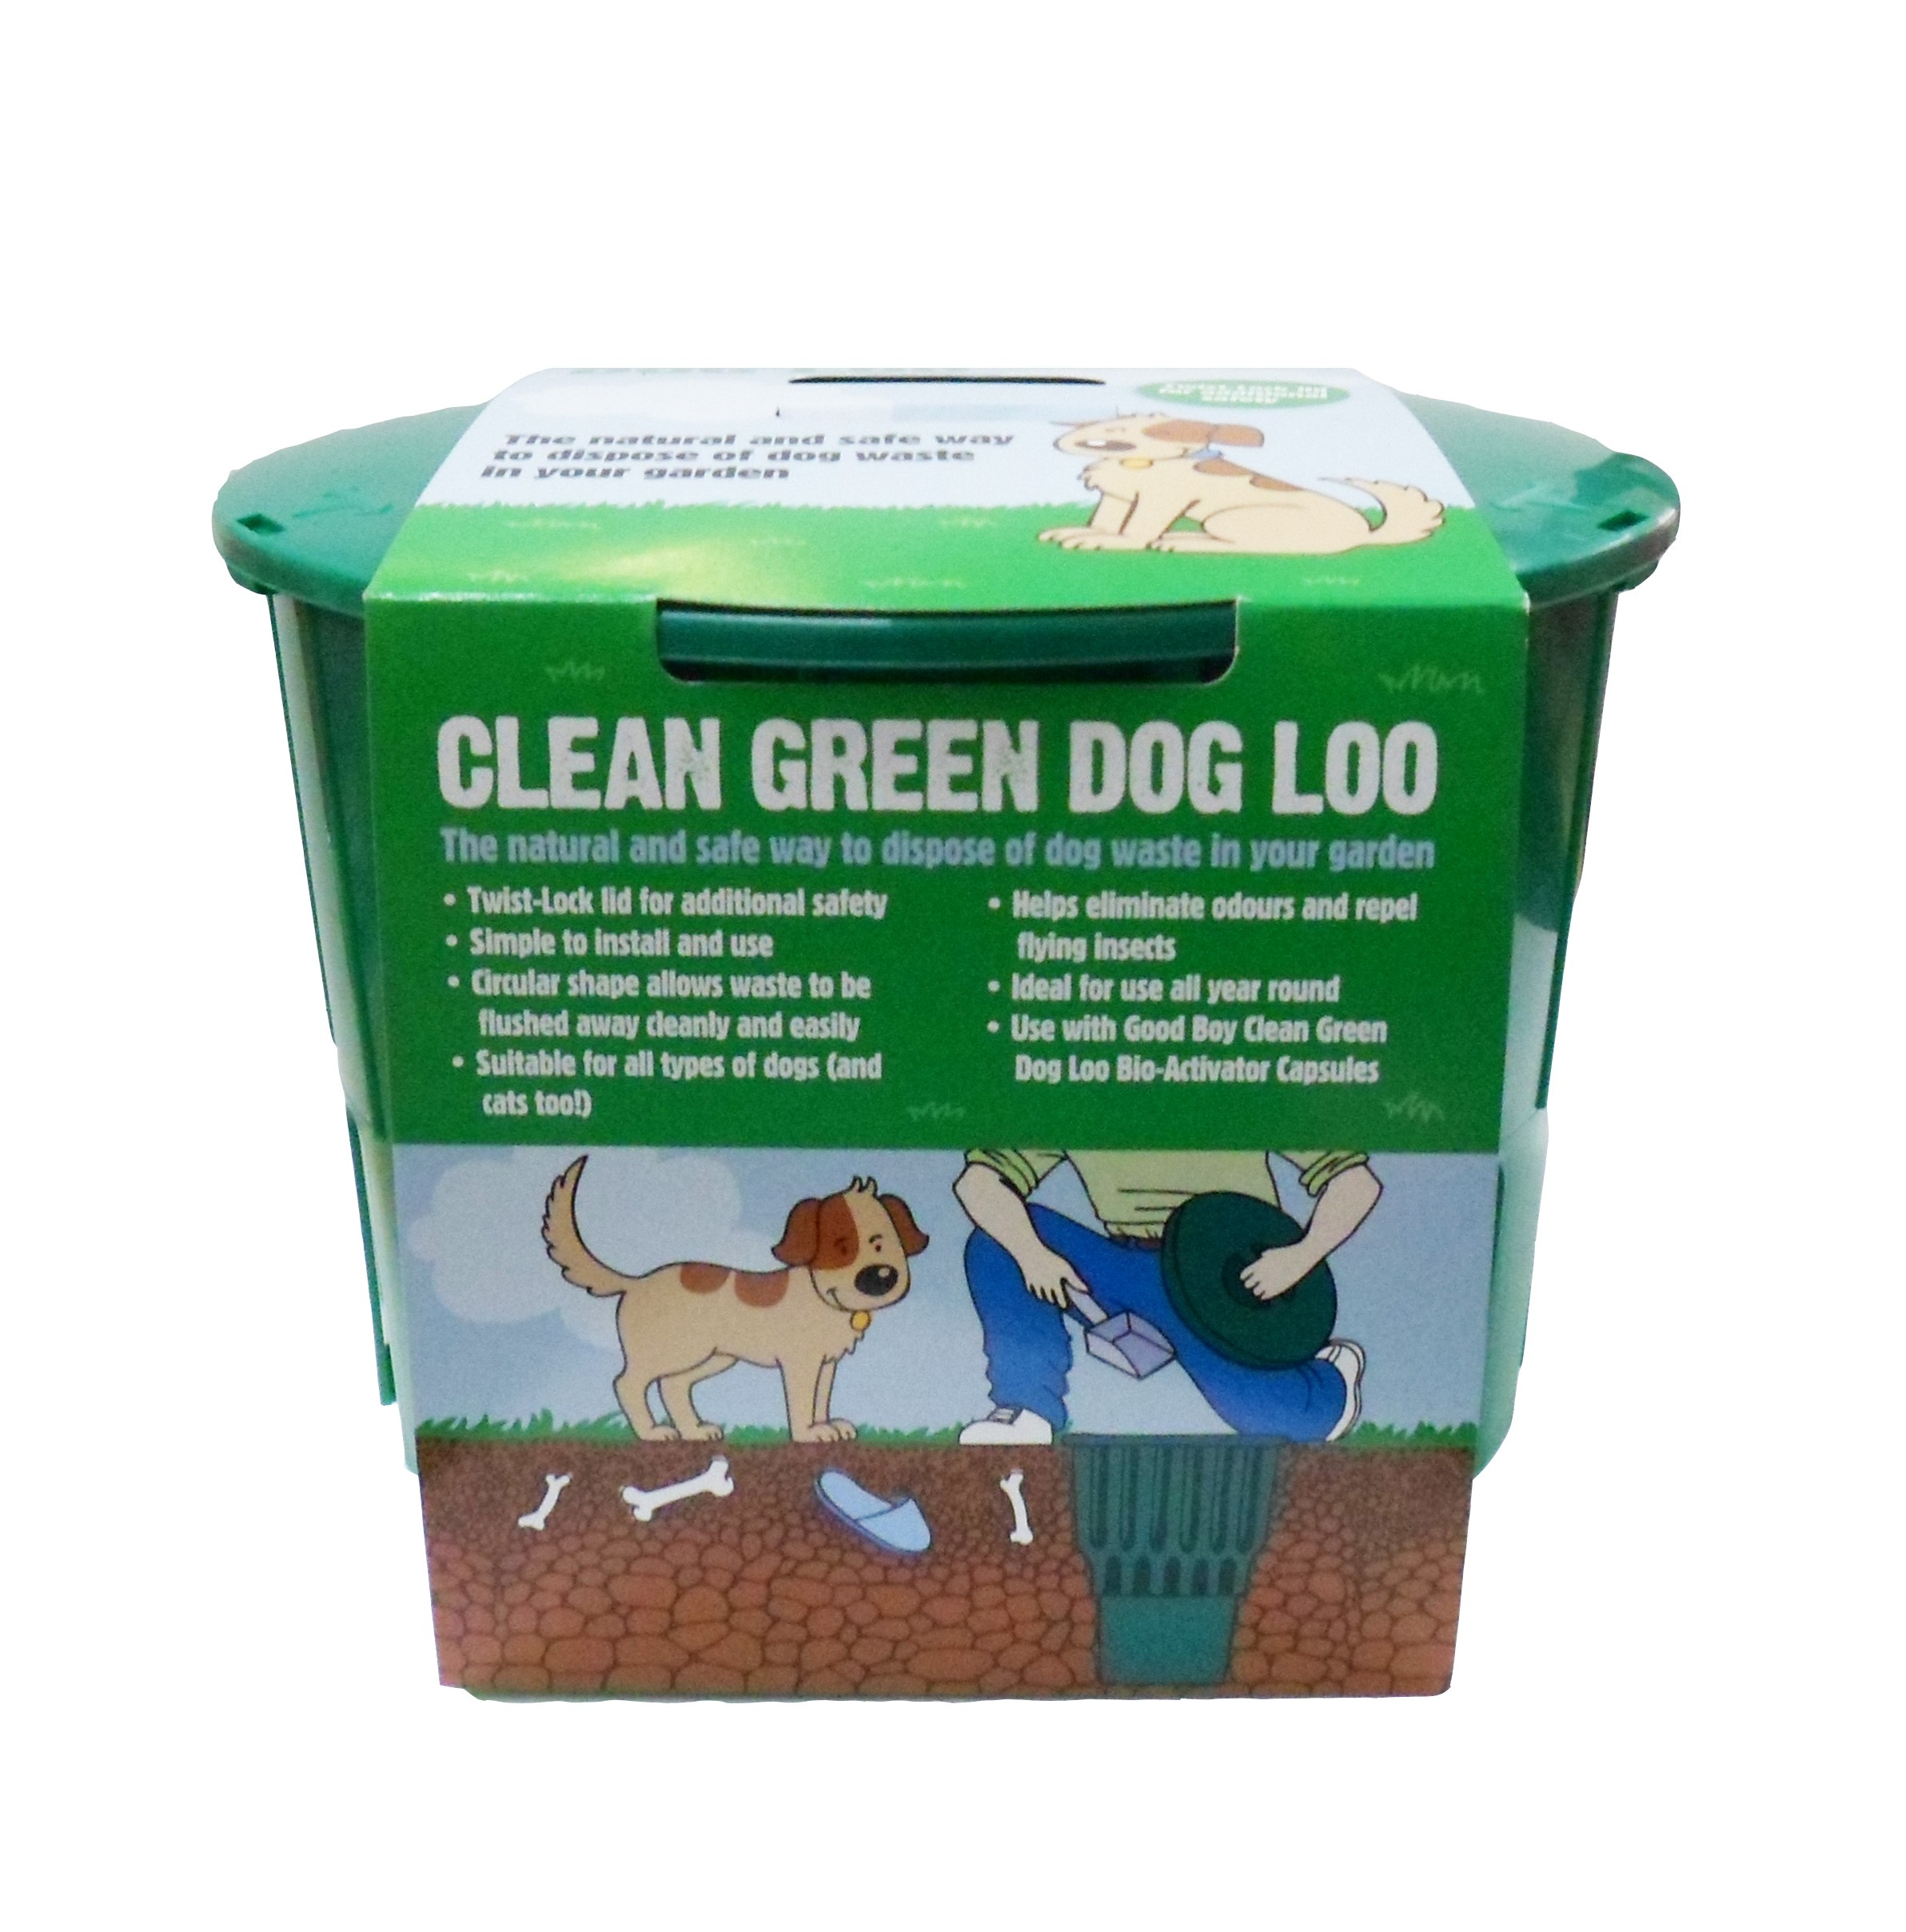 Clean Green Dog Loo